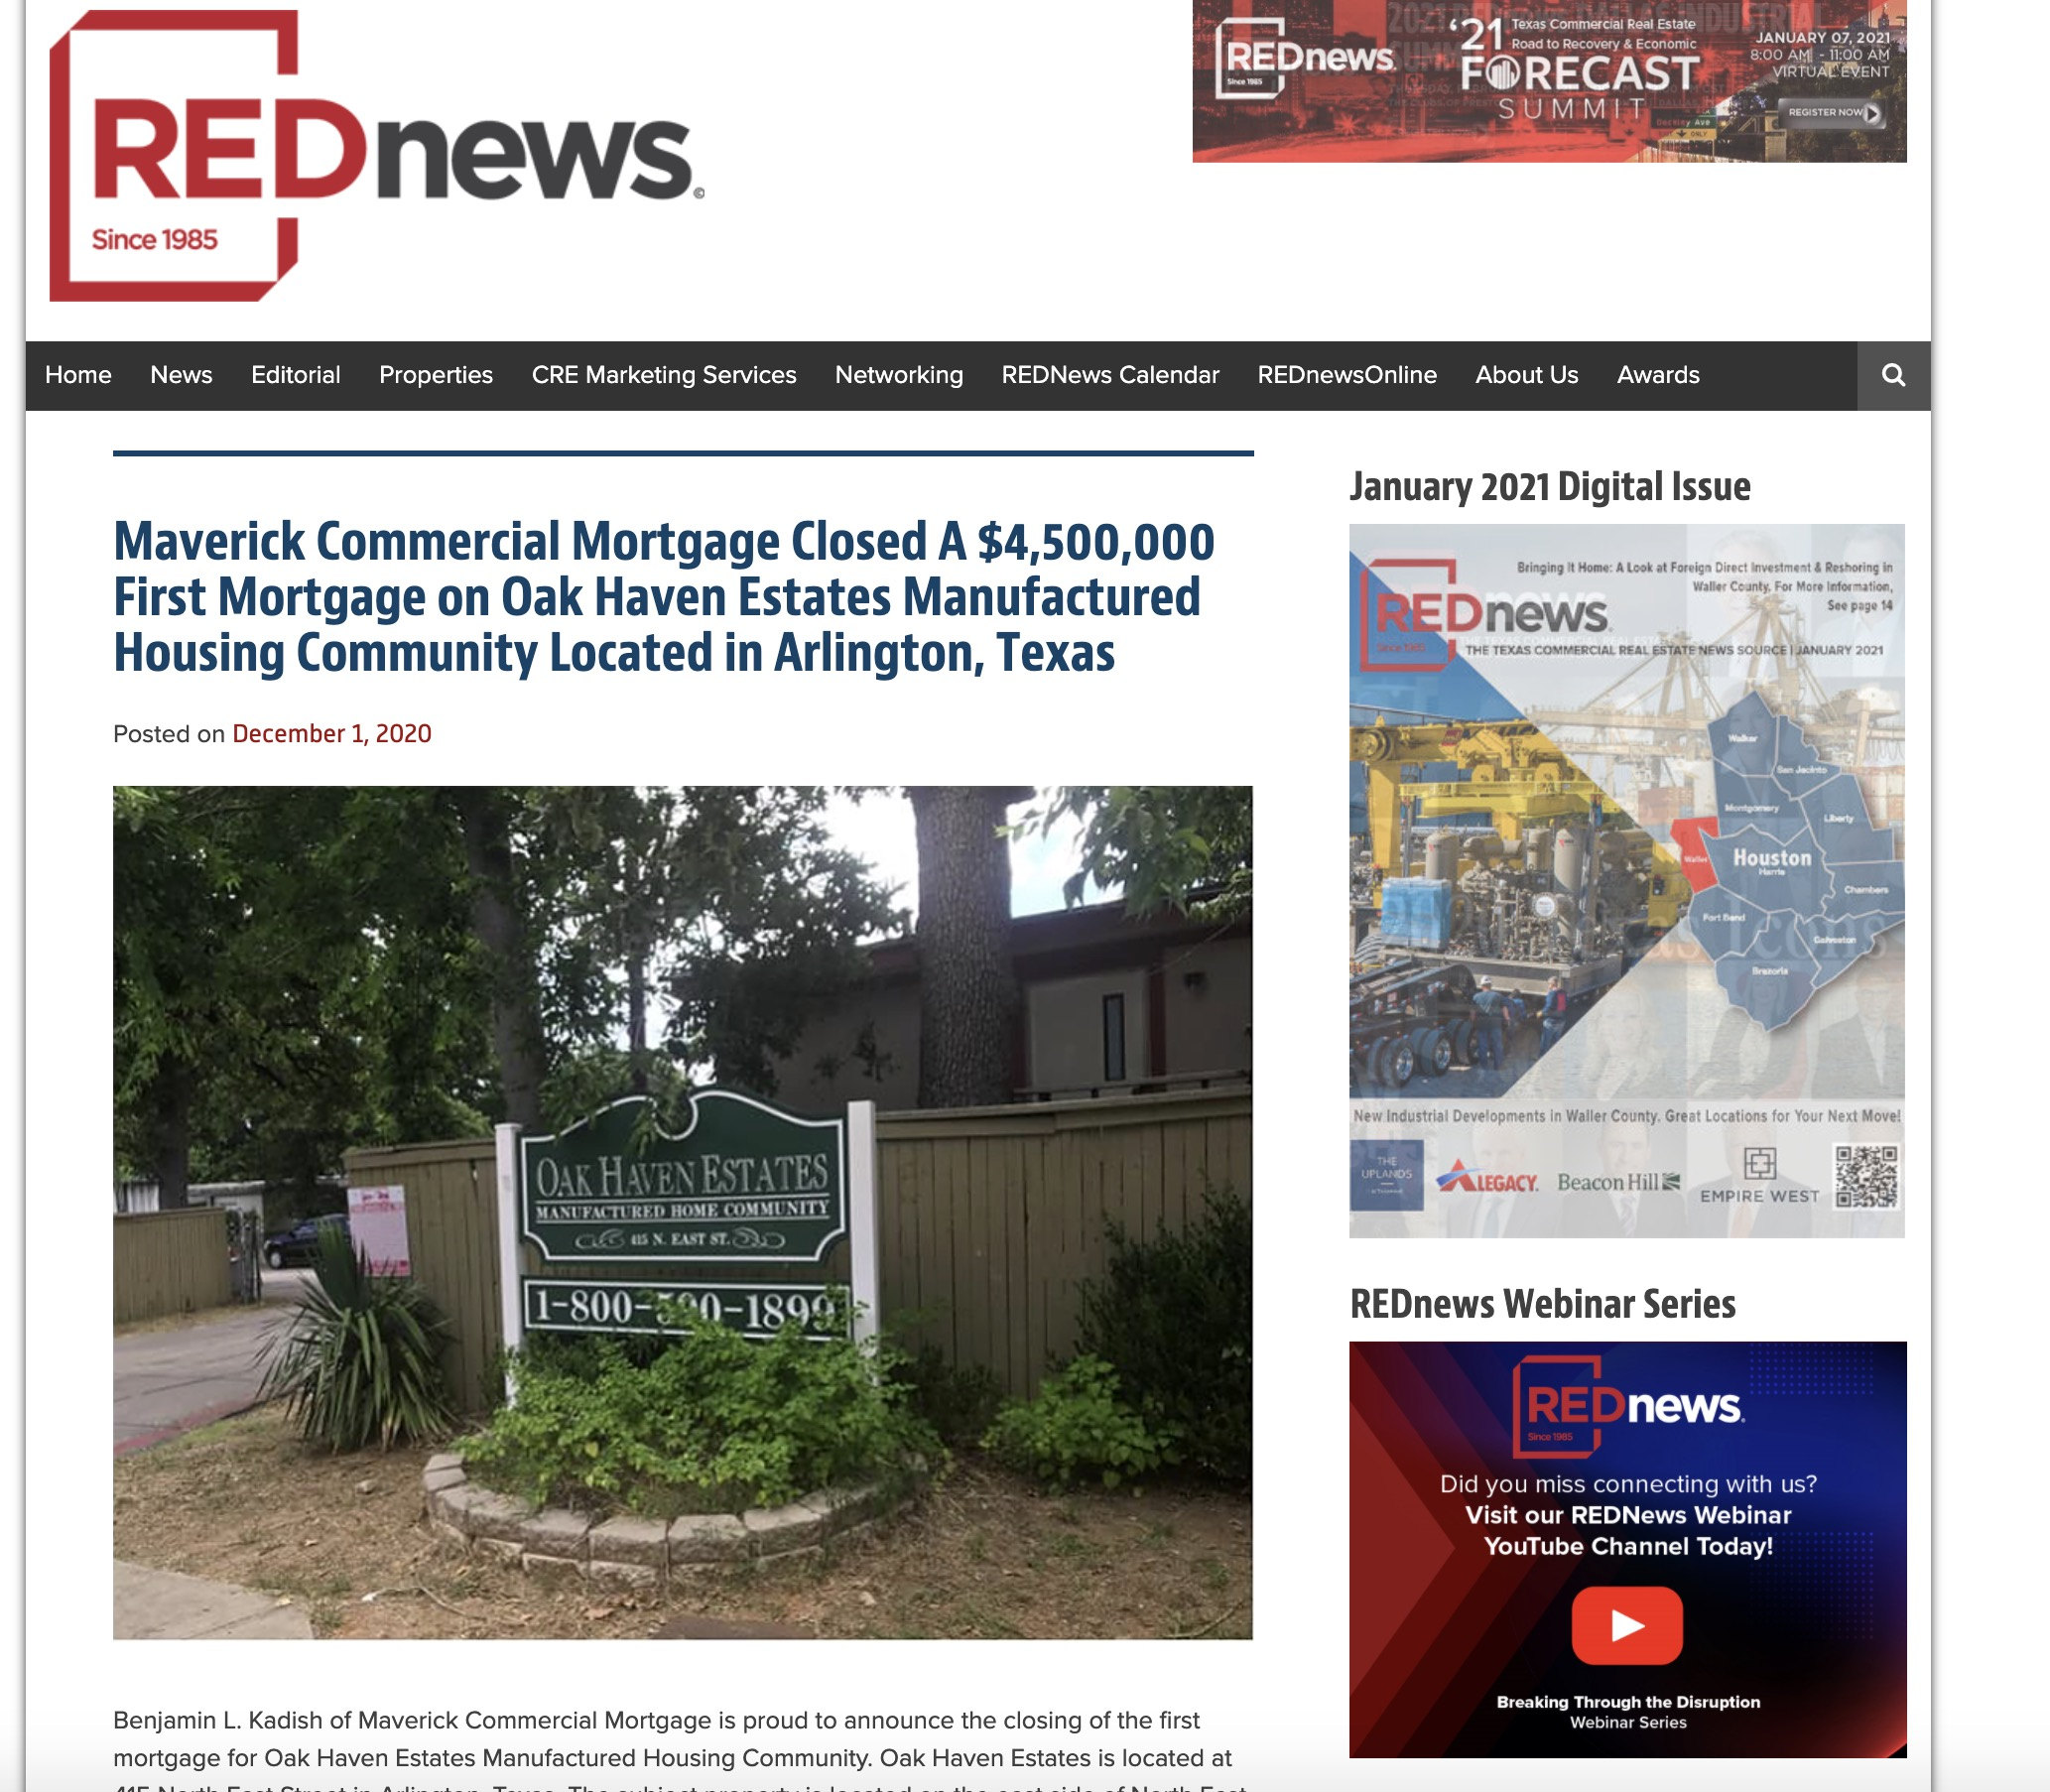 Maverick Commercial Mortgage Closed A $4,500,000 First Mortgage on Oak Haven Estates Manufactured Housing Community Located in Arlington, Texas-arlington-texas/